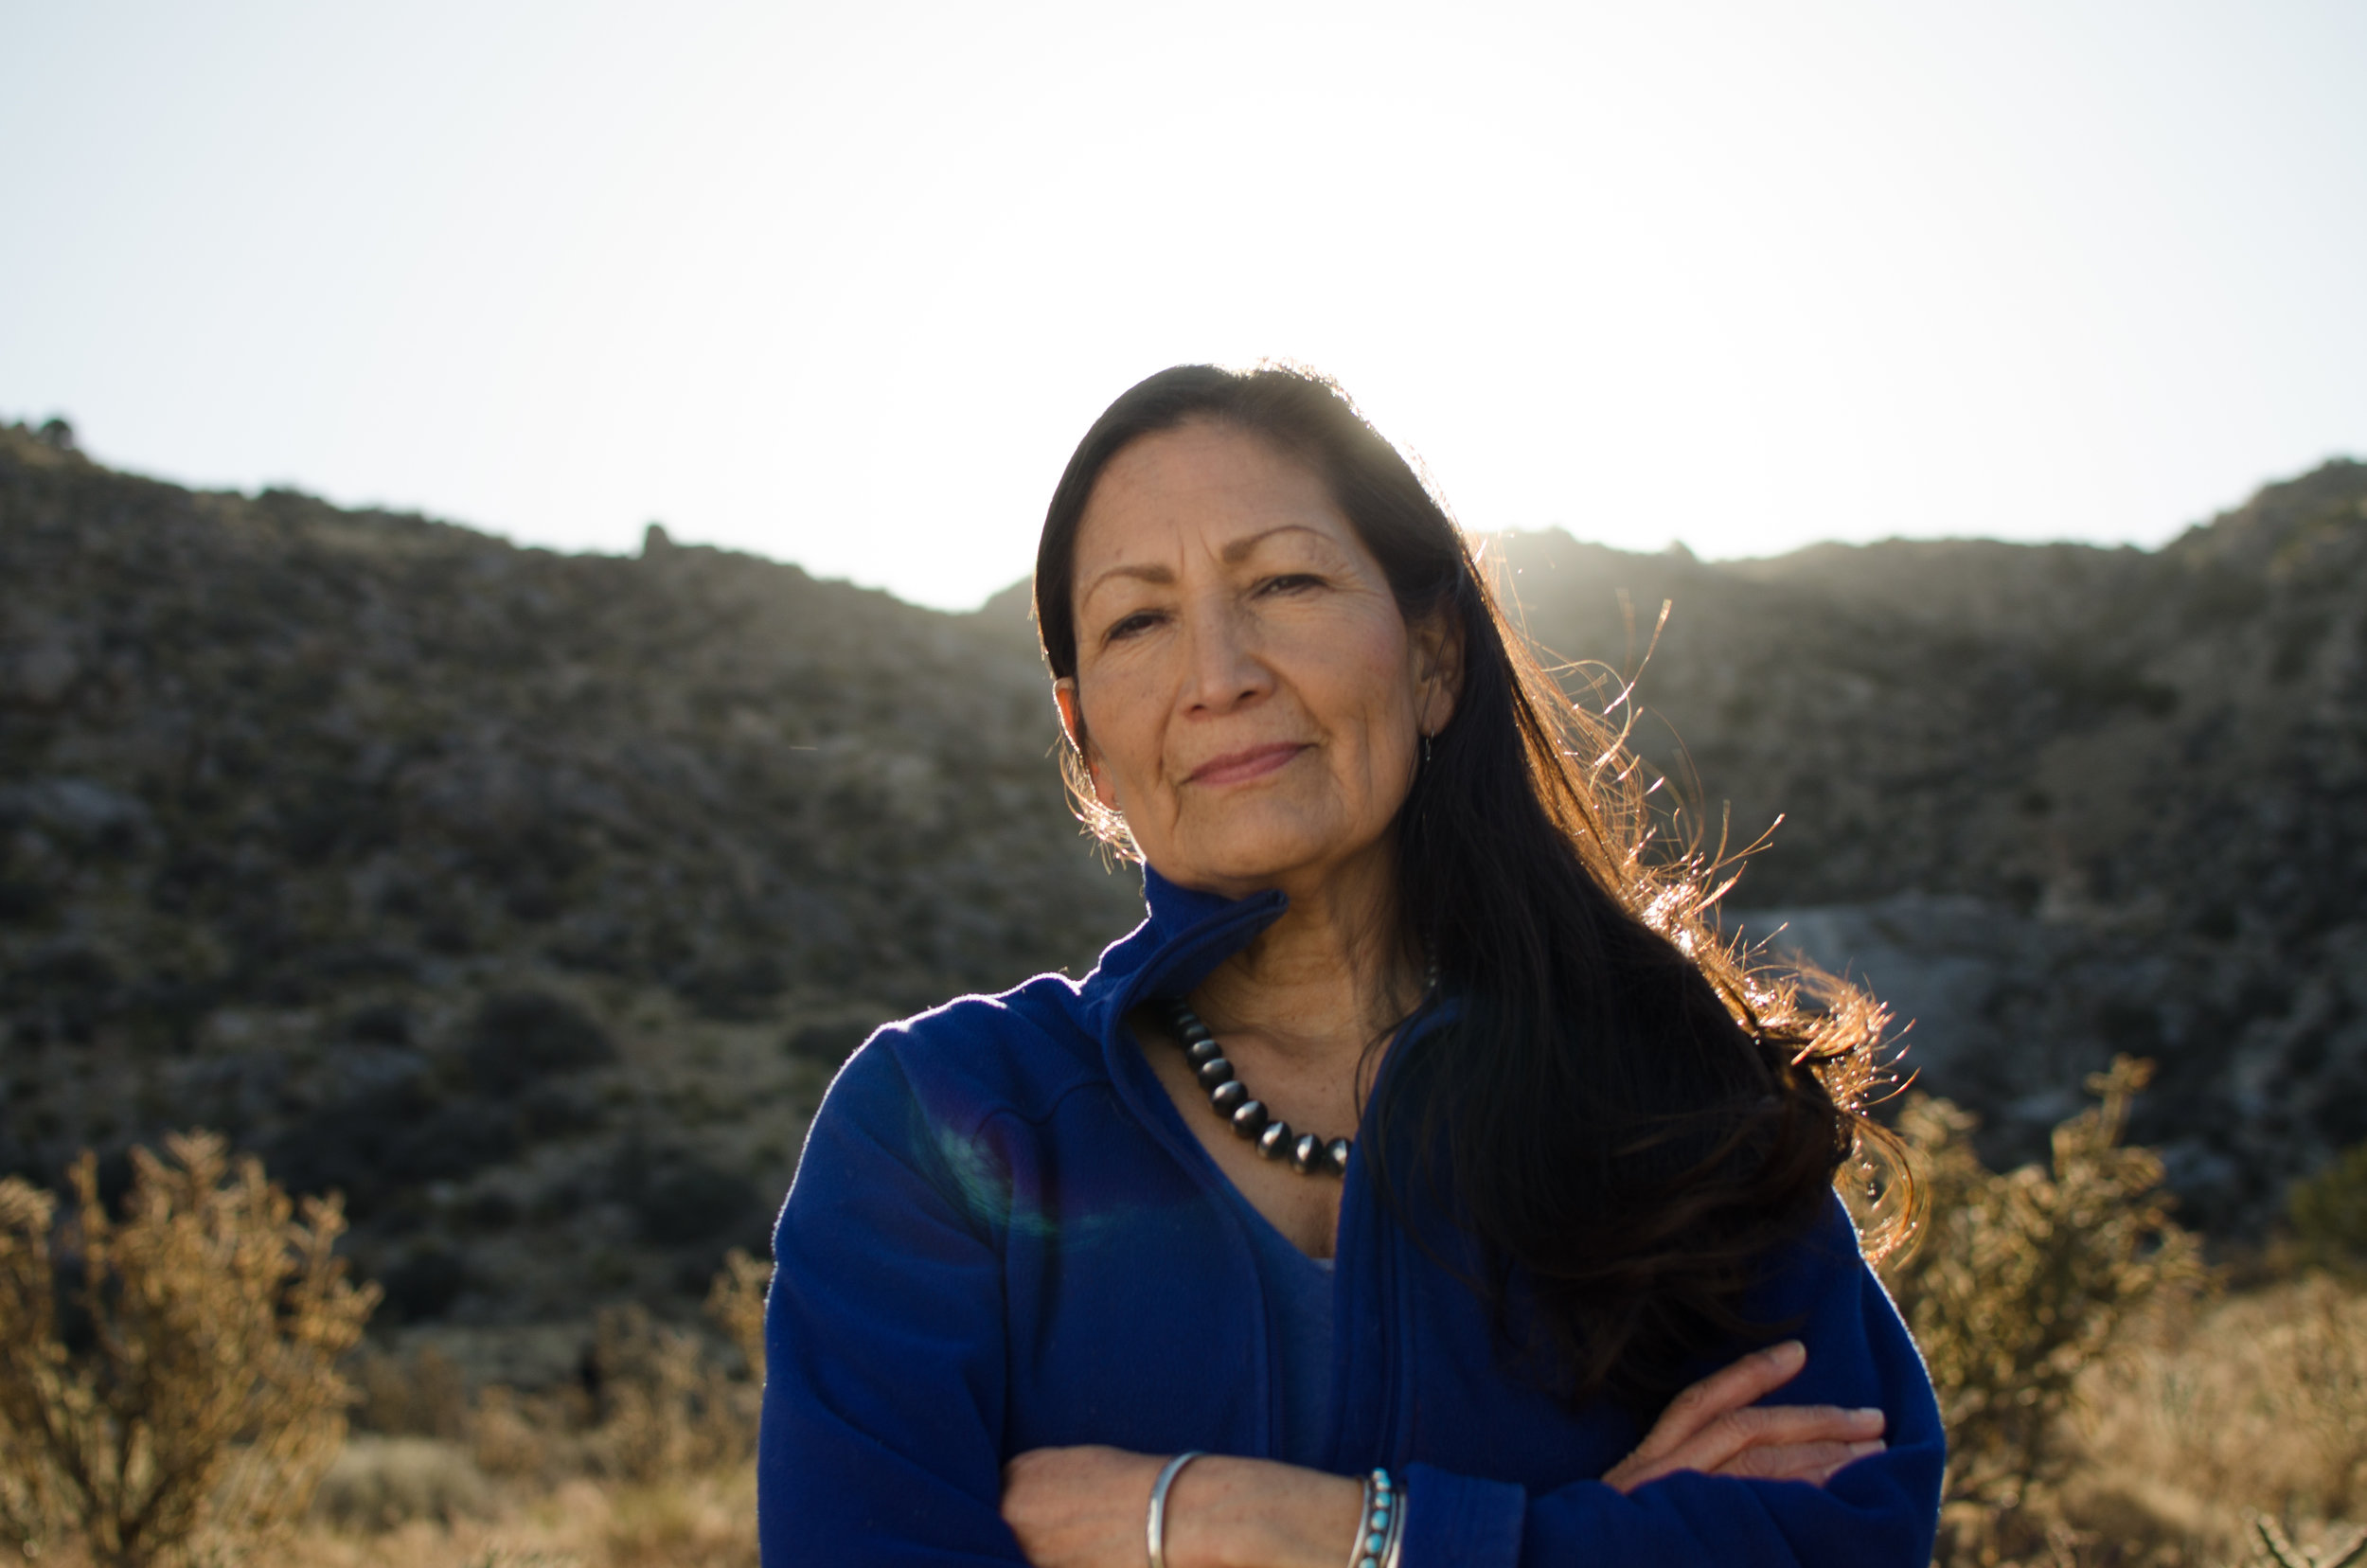 Meet Deb Haaland - I'm running for Congress because I believe that New Mexico can be a place of strong, safe communities where our kids can be happy growing up, and can build a life here when they are grown. We need honest and proven leadership that is committed to serving New Mexico communities and the people of the First Congressional District of New Mexico. I would be honored to be that voice.Learn More